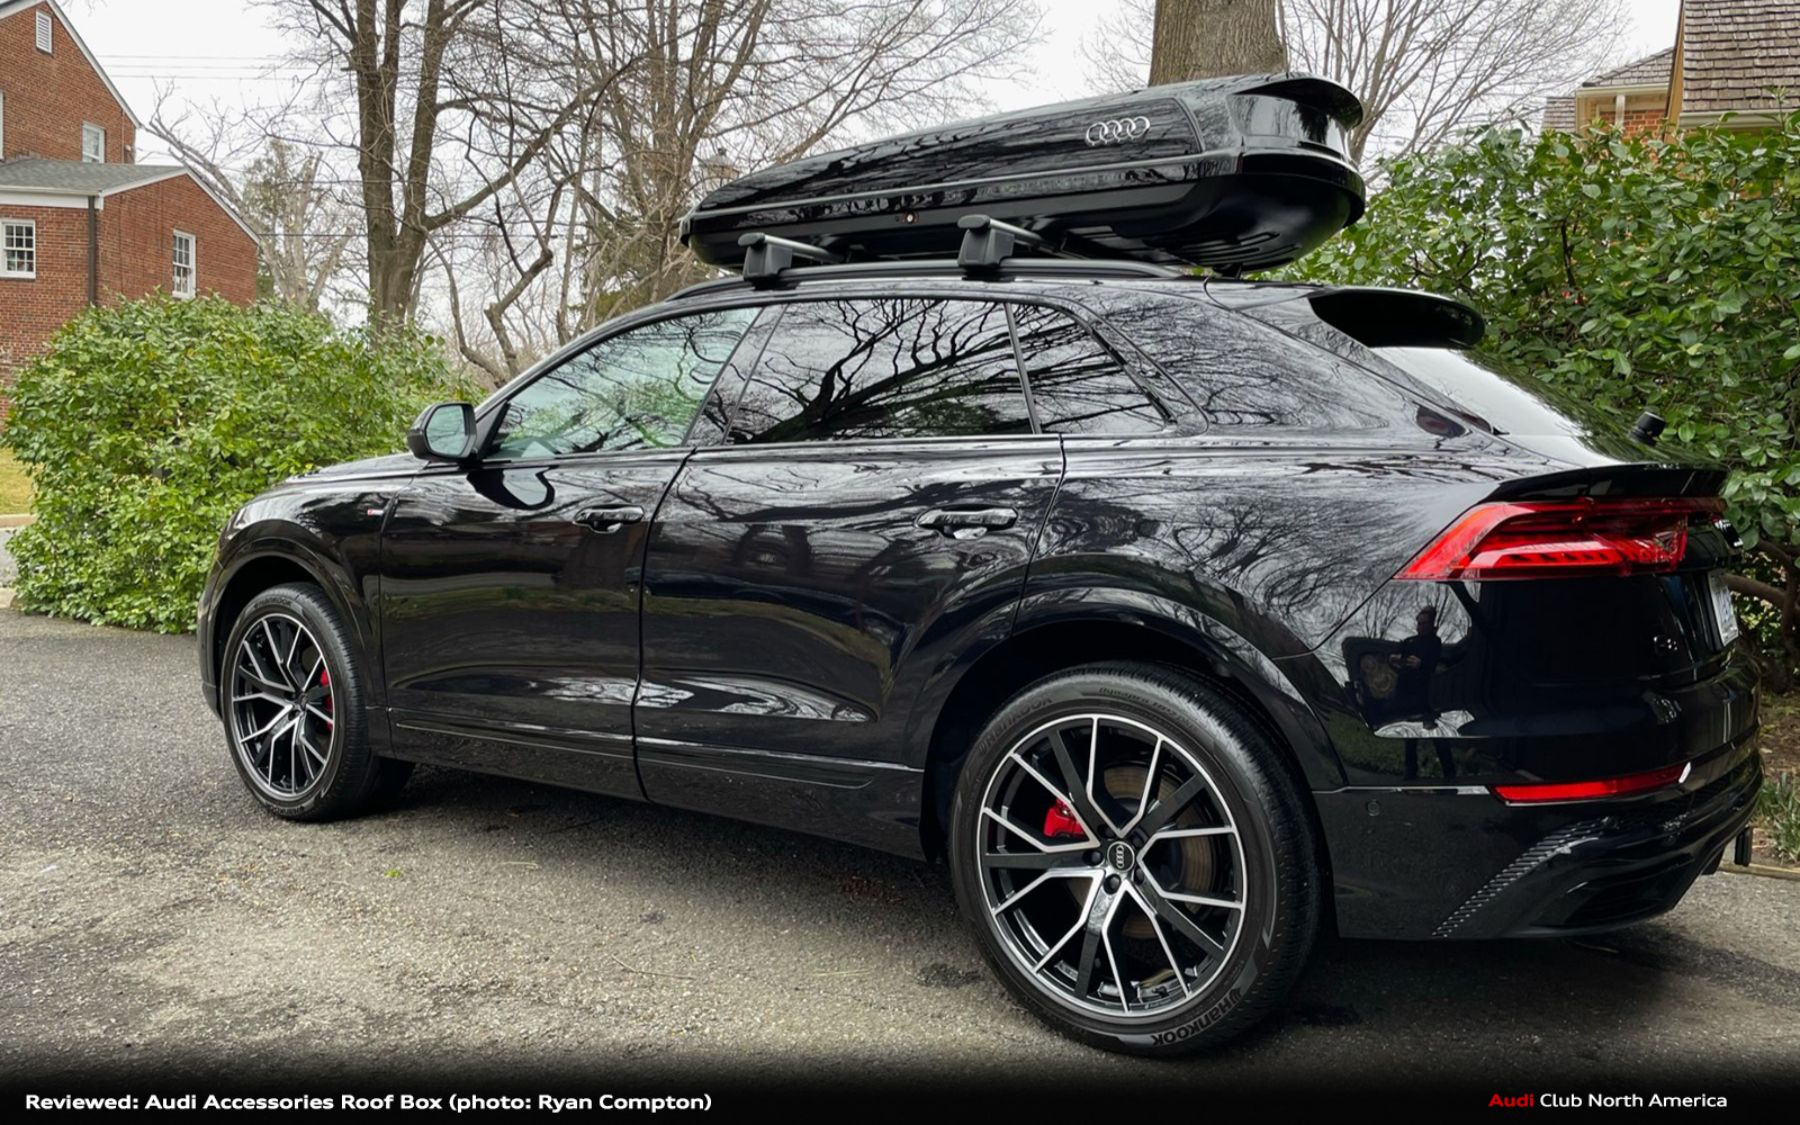 Reviewed: Audi Accessories Roof Box